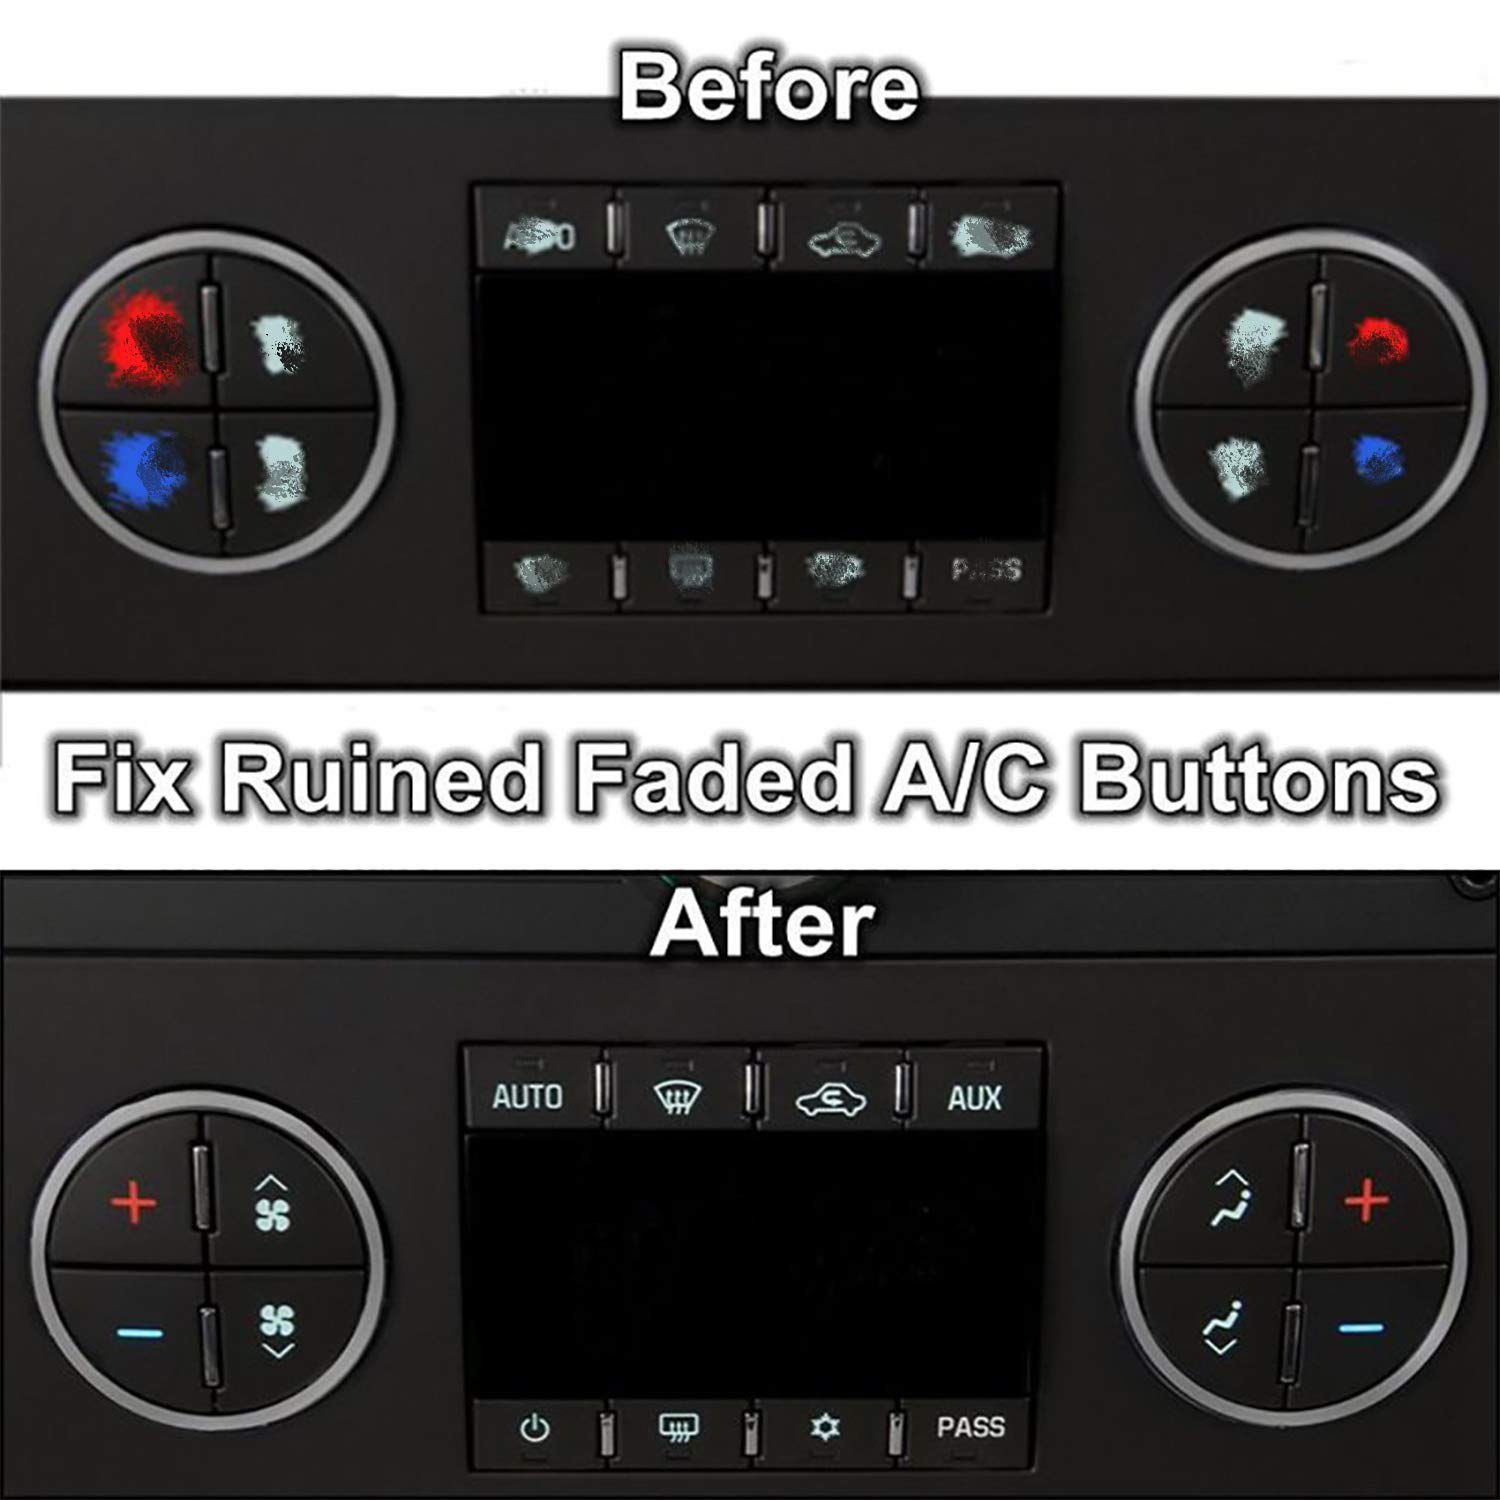 Fullsexy 2 Pack AC Dash Button Sticker Repair Kit for 2007-2013 GM GMC Chevy Chevrolet 2009-2012 Buick Saturn Decals Sticker PVC Fix Ruined Faded A//C Controls